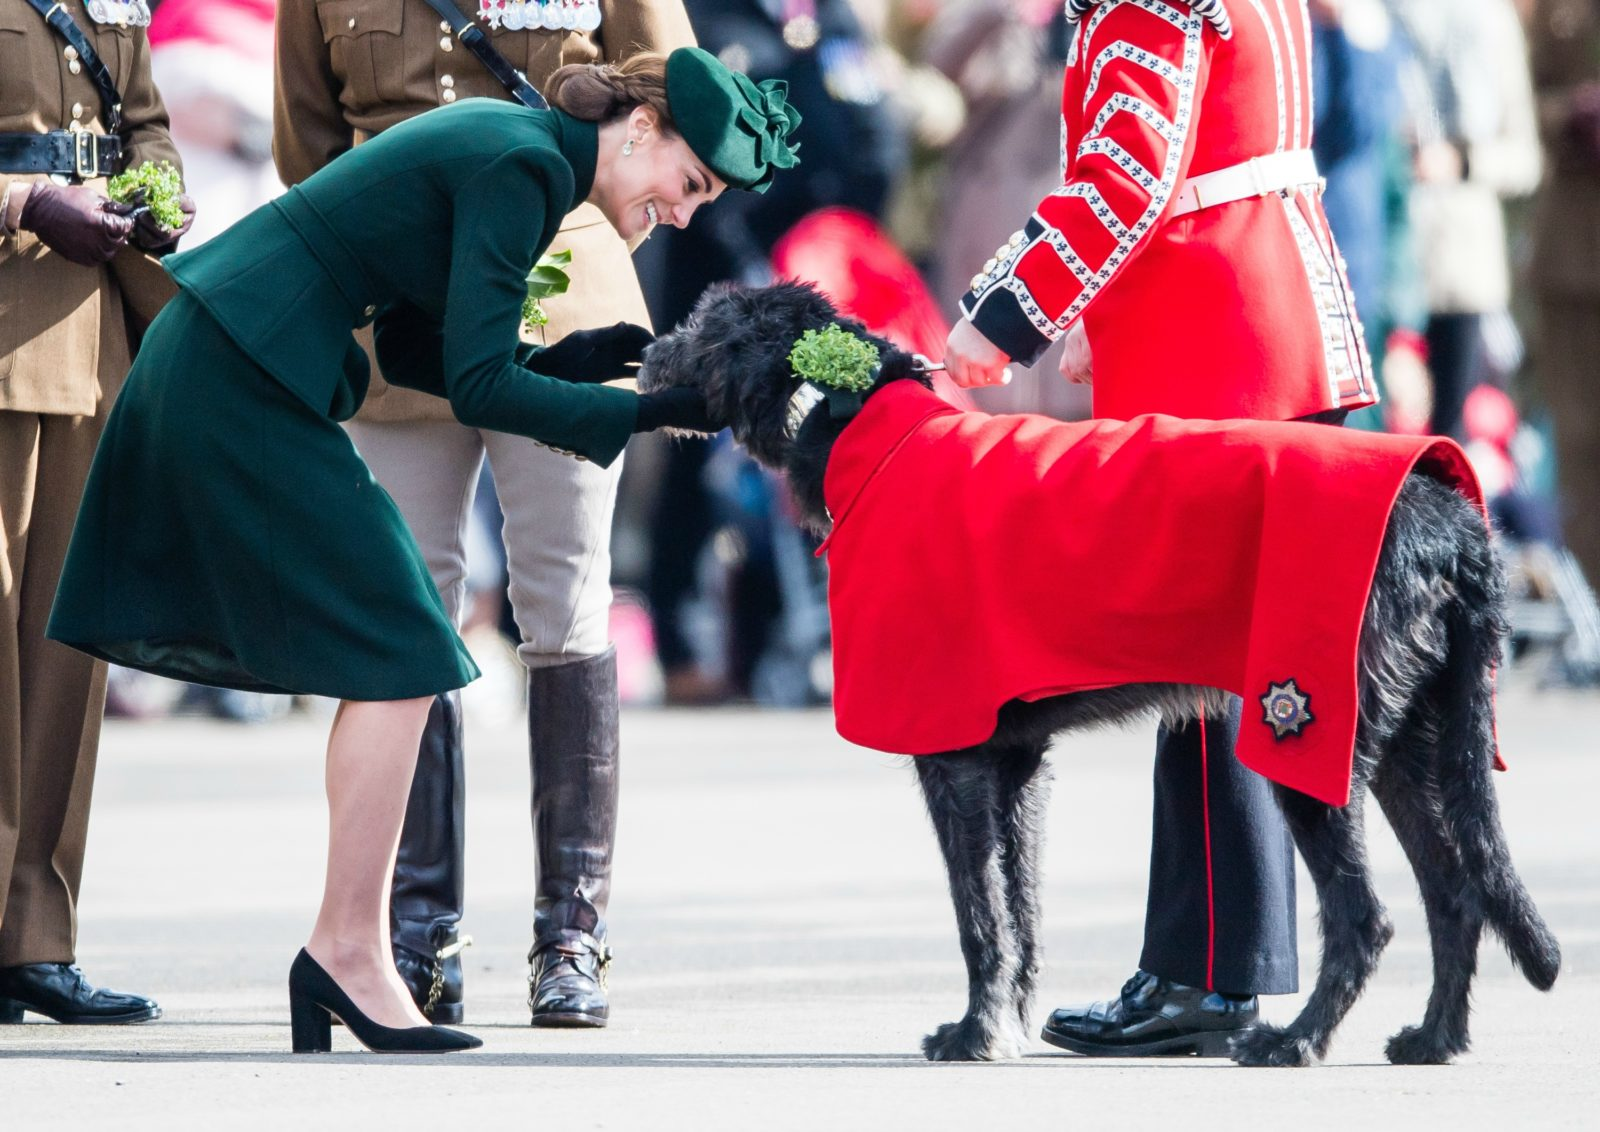 Catherine looked in her element as she petted the adorable dog. Source: Getty.